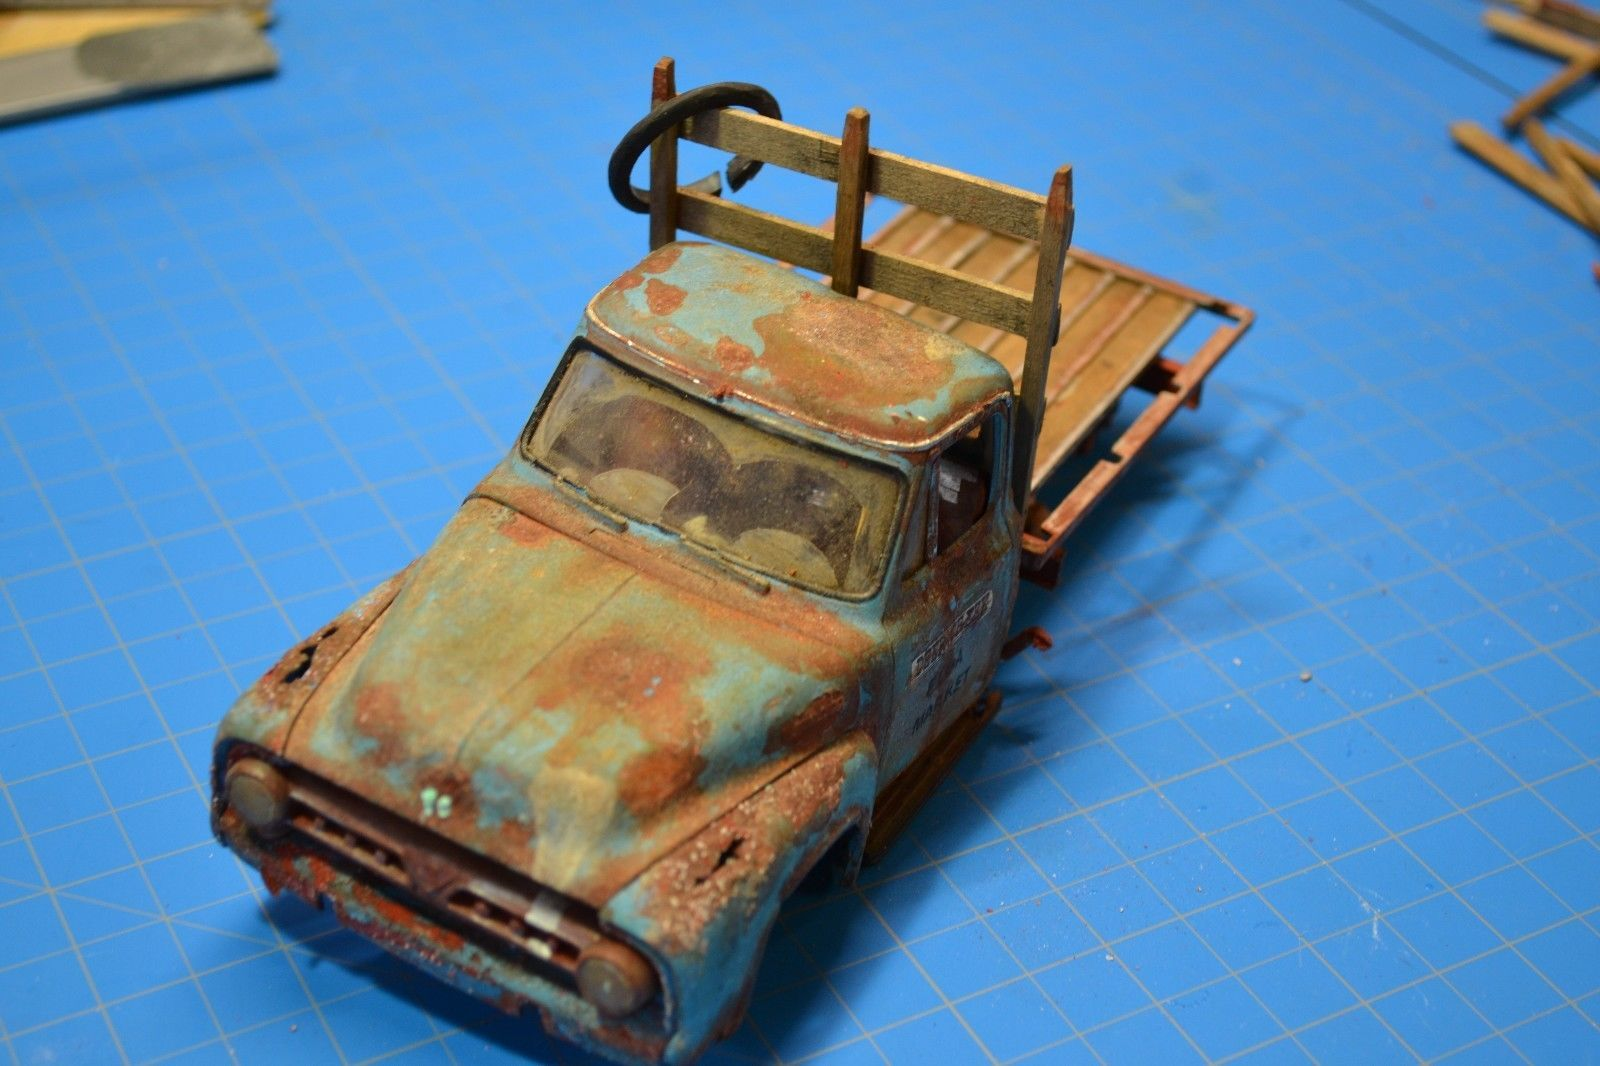 Pro built 1953 53 ford f100 pickup truck weathered detailed diorama flea market